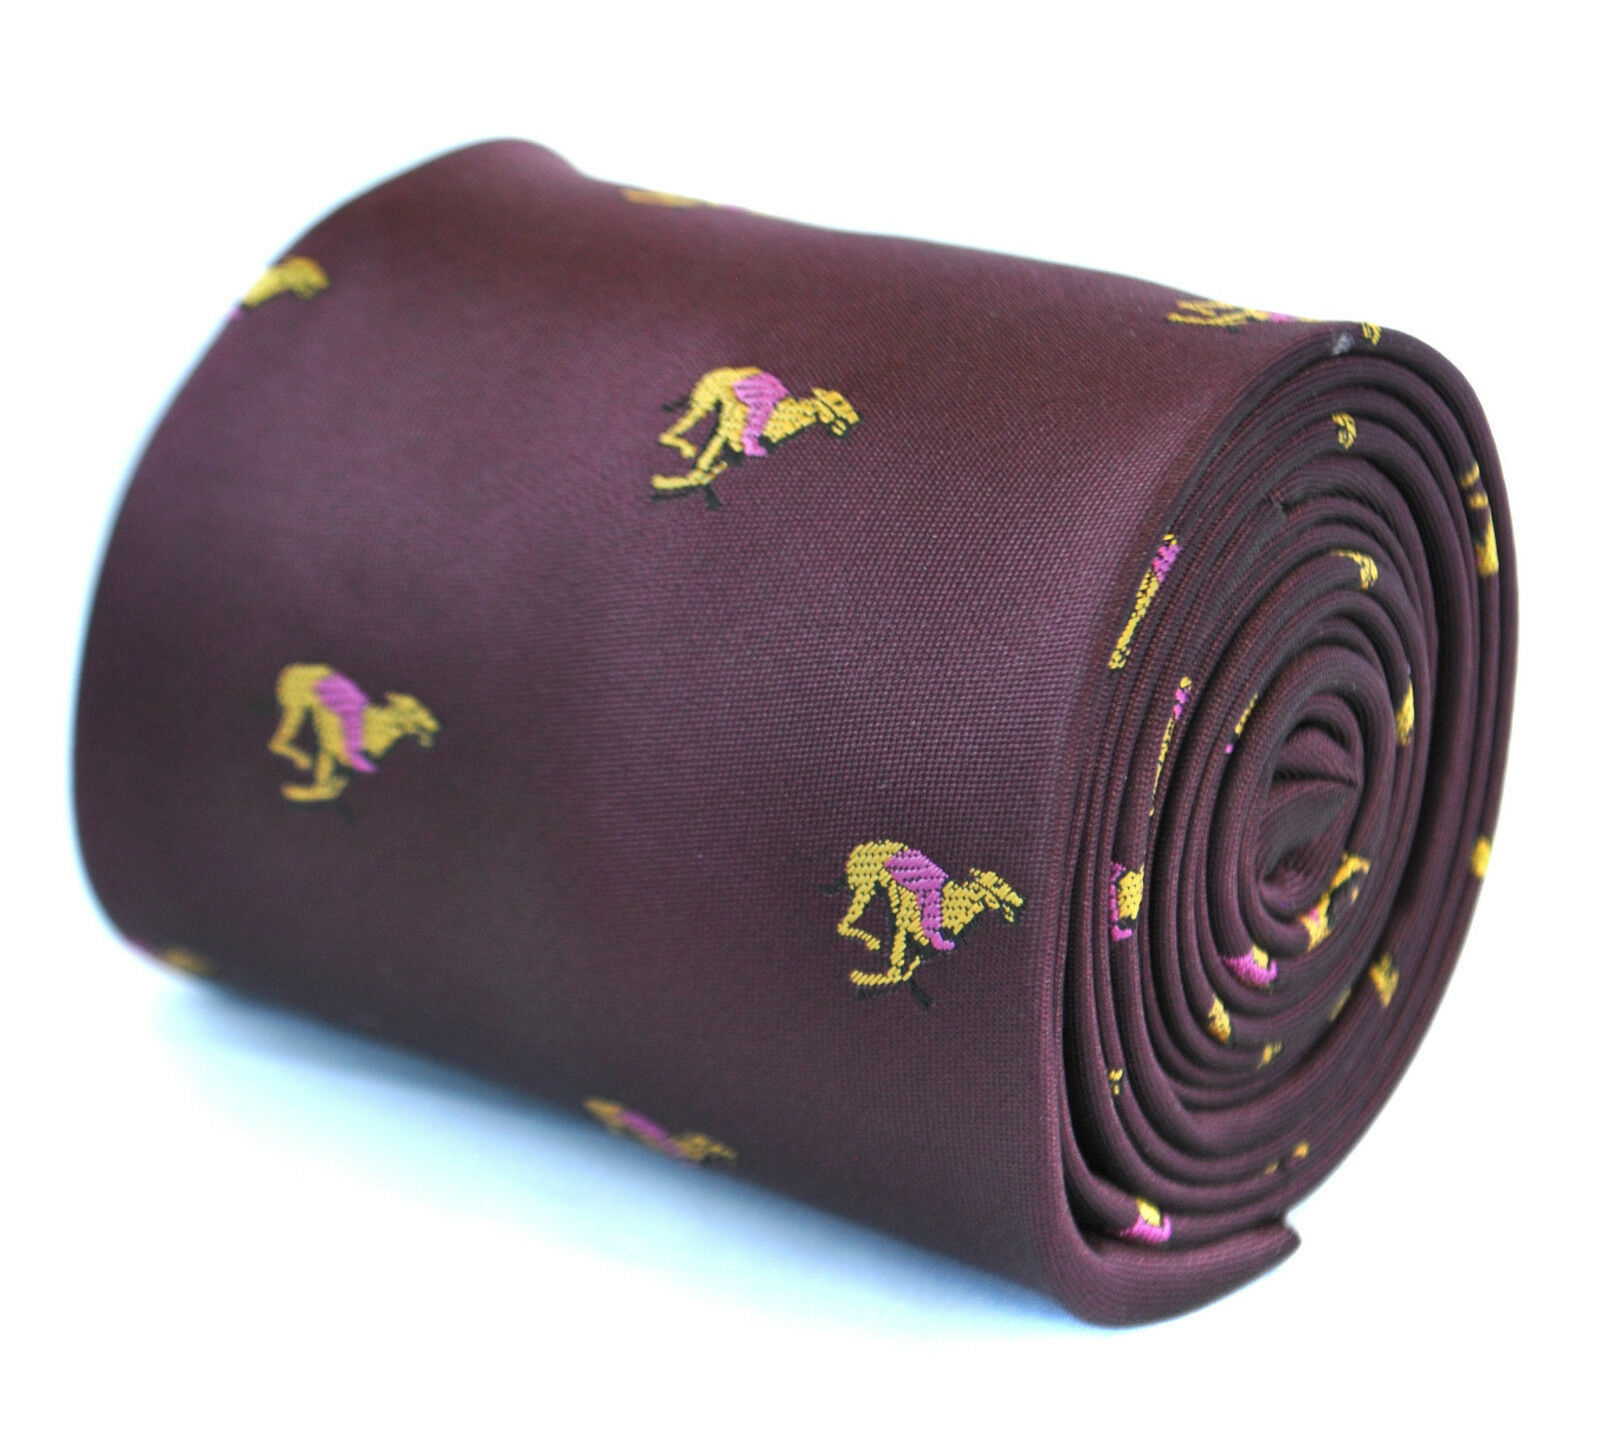 Frederick Thomas Designer Mens Tie - Burgundy Maroon - Embroidered Greyhound Dog